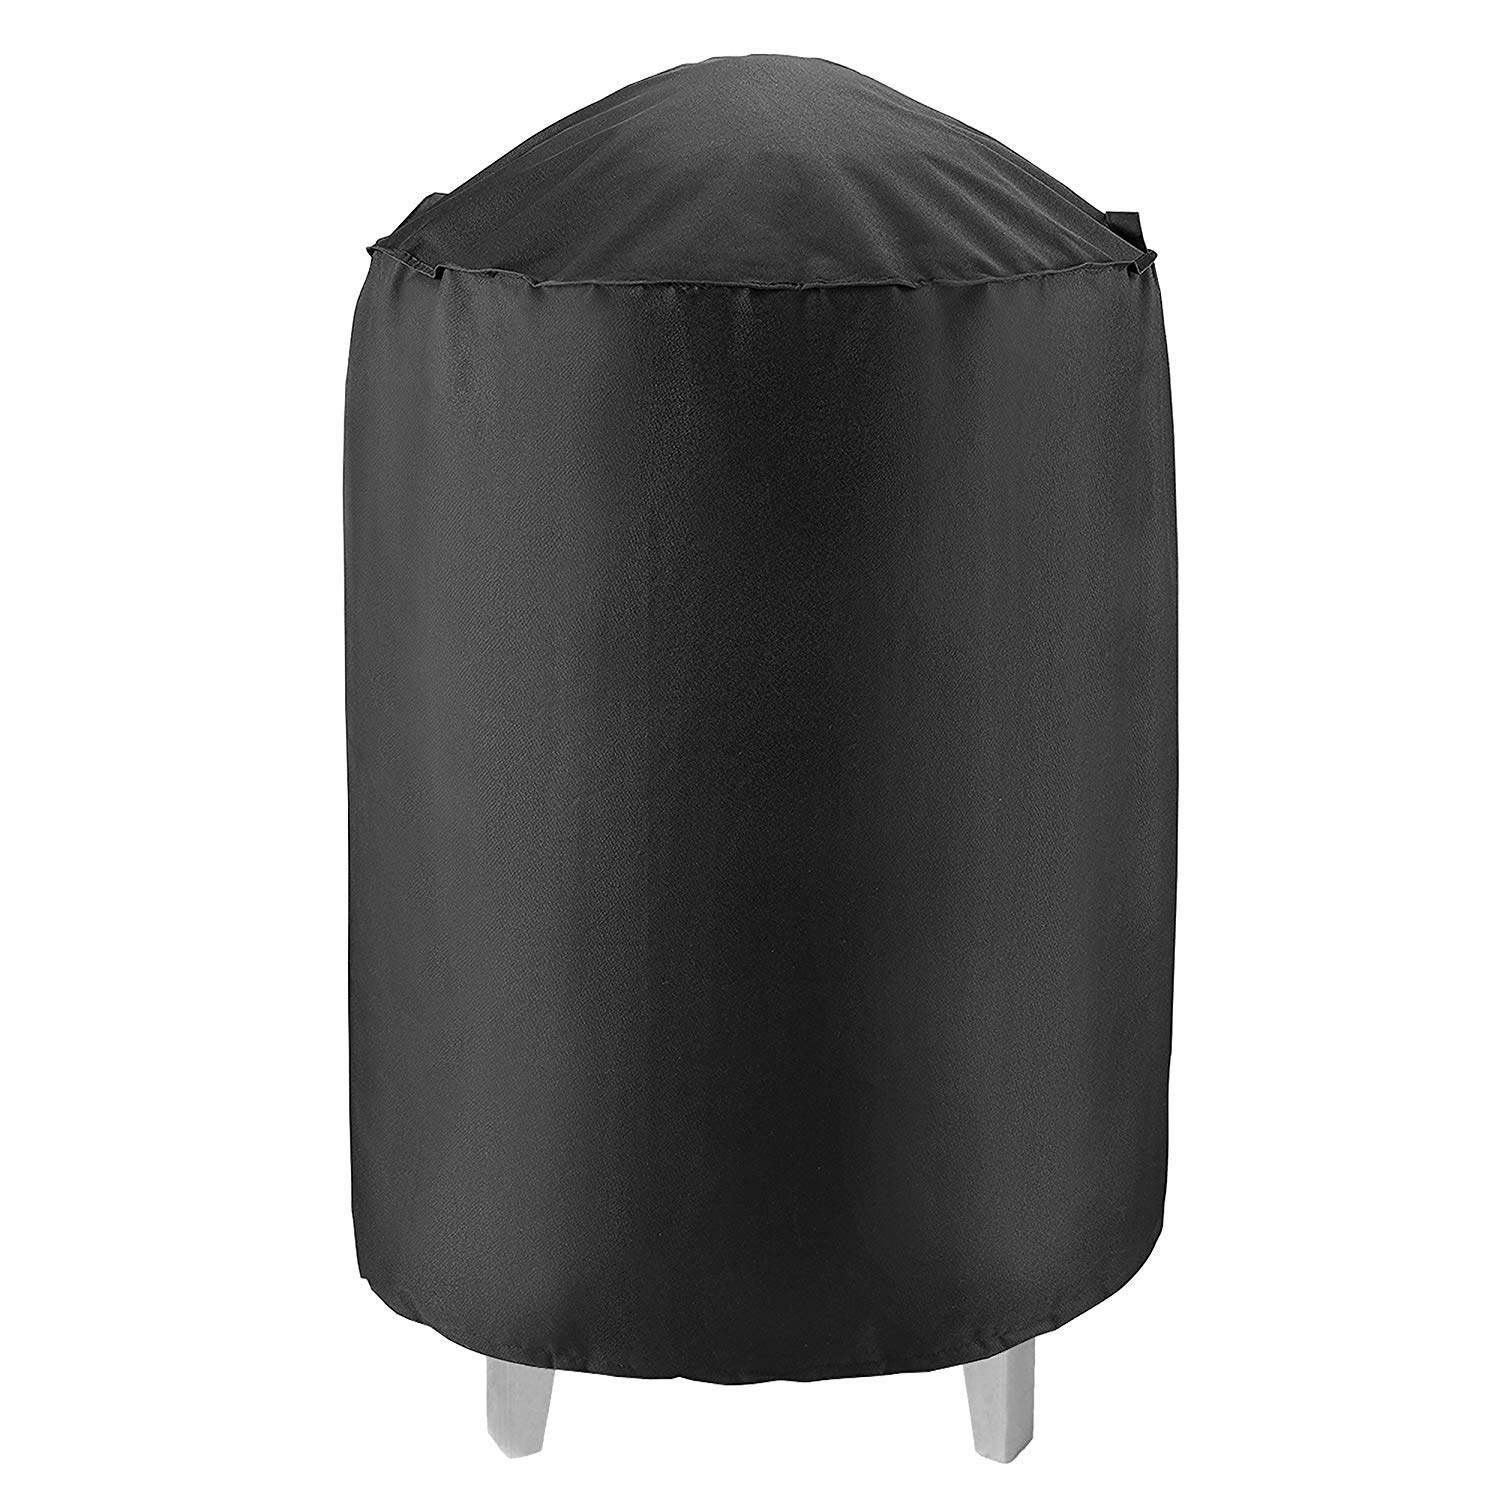 "Mr.You Dome Smoker Cover, 30"" Dia x 36"" H,Heavy Duty Waterproof Barrel Cover, Vertical Water Smoker Cover, Round Kettle Grill Covers, All Weather Protection for Weber, Char-Broil and More"